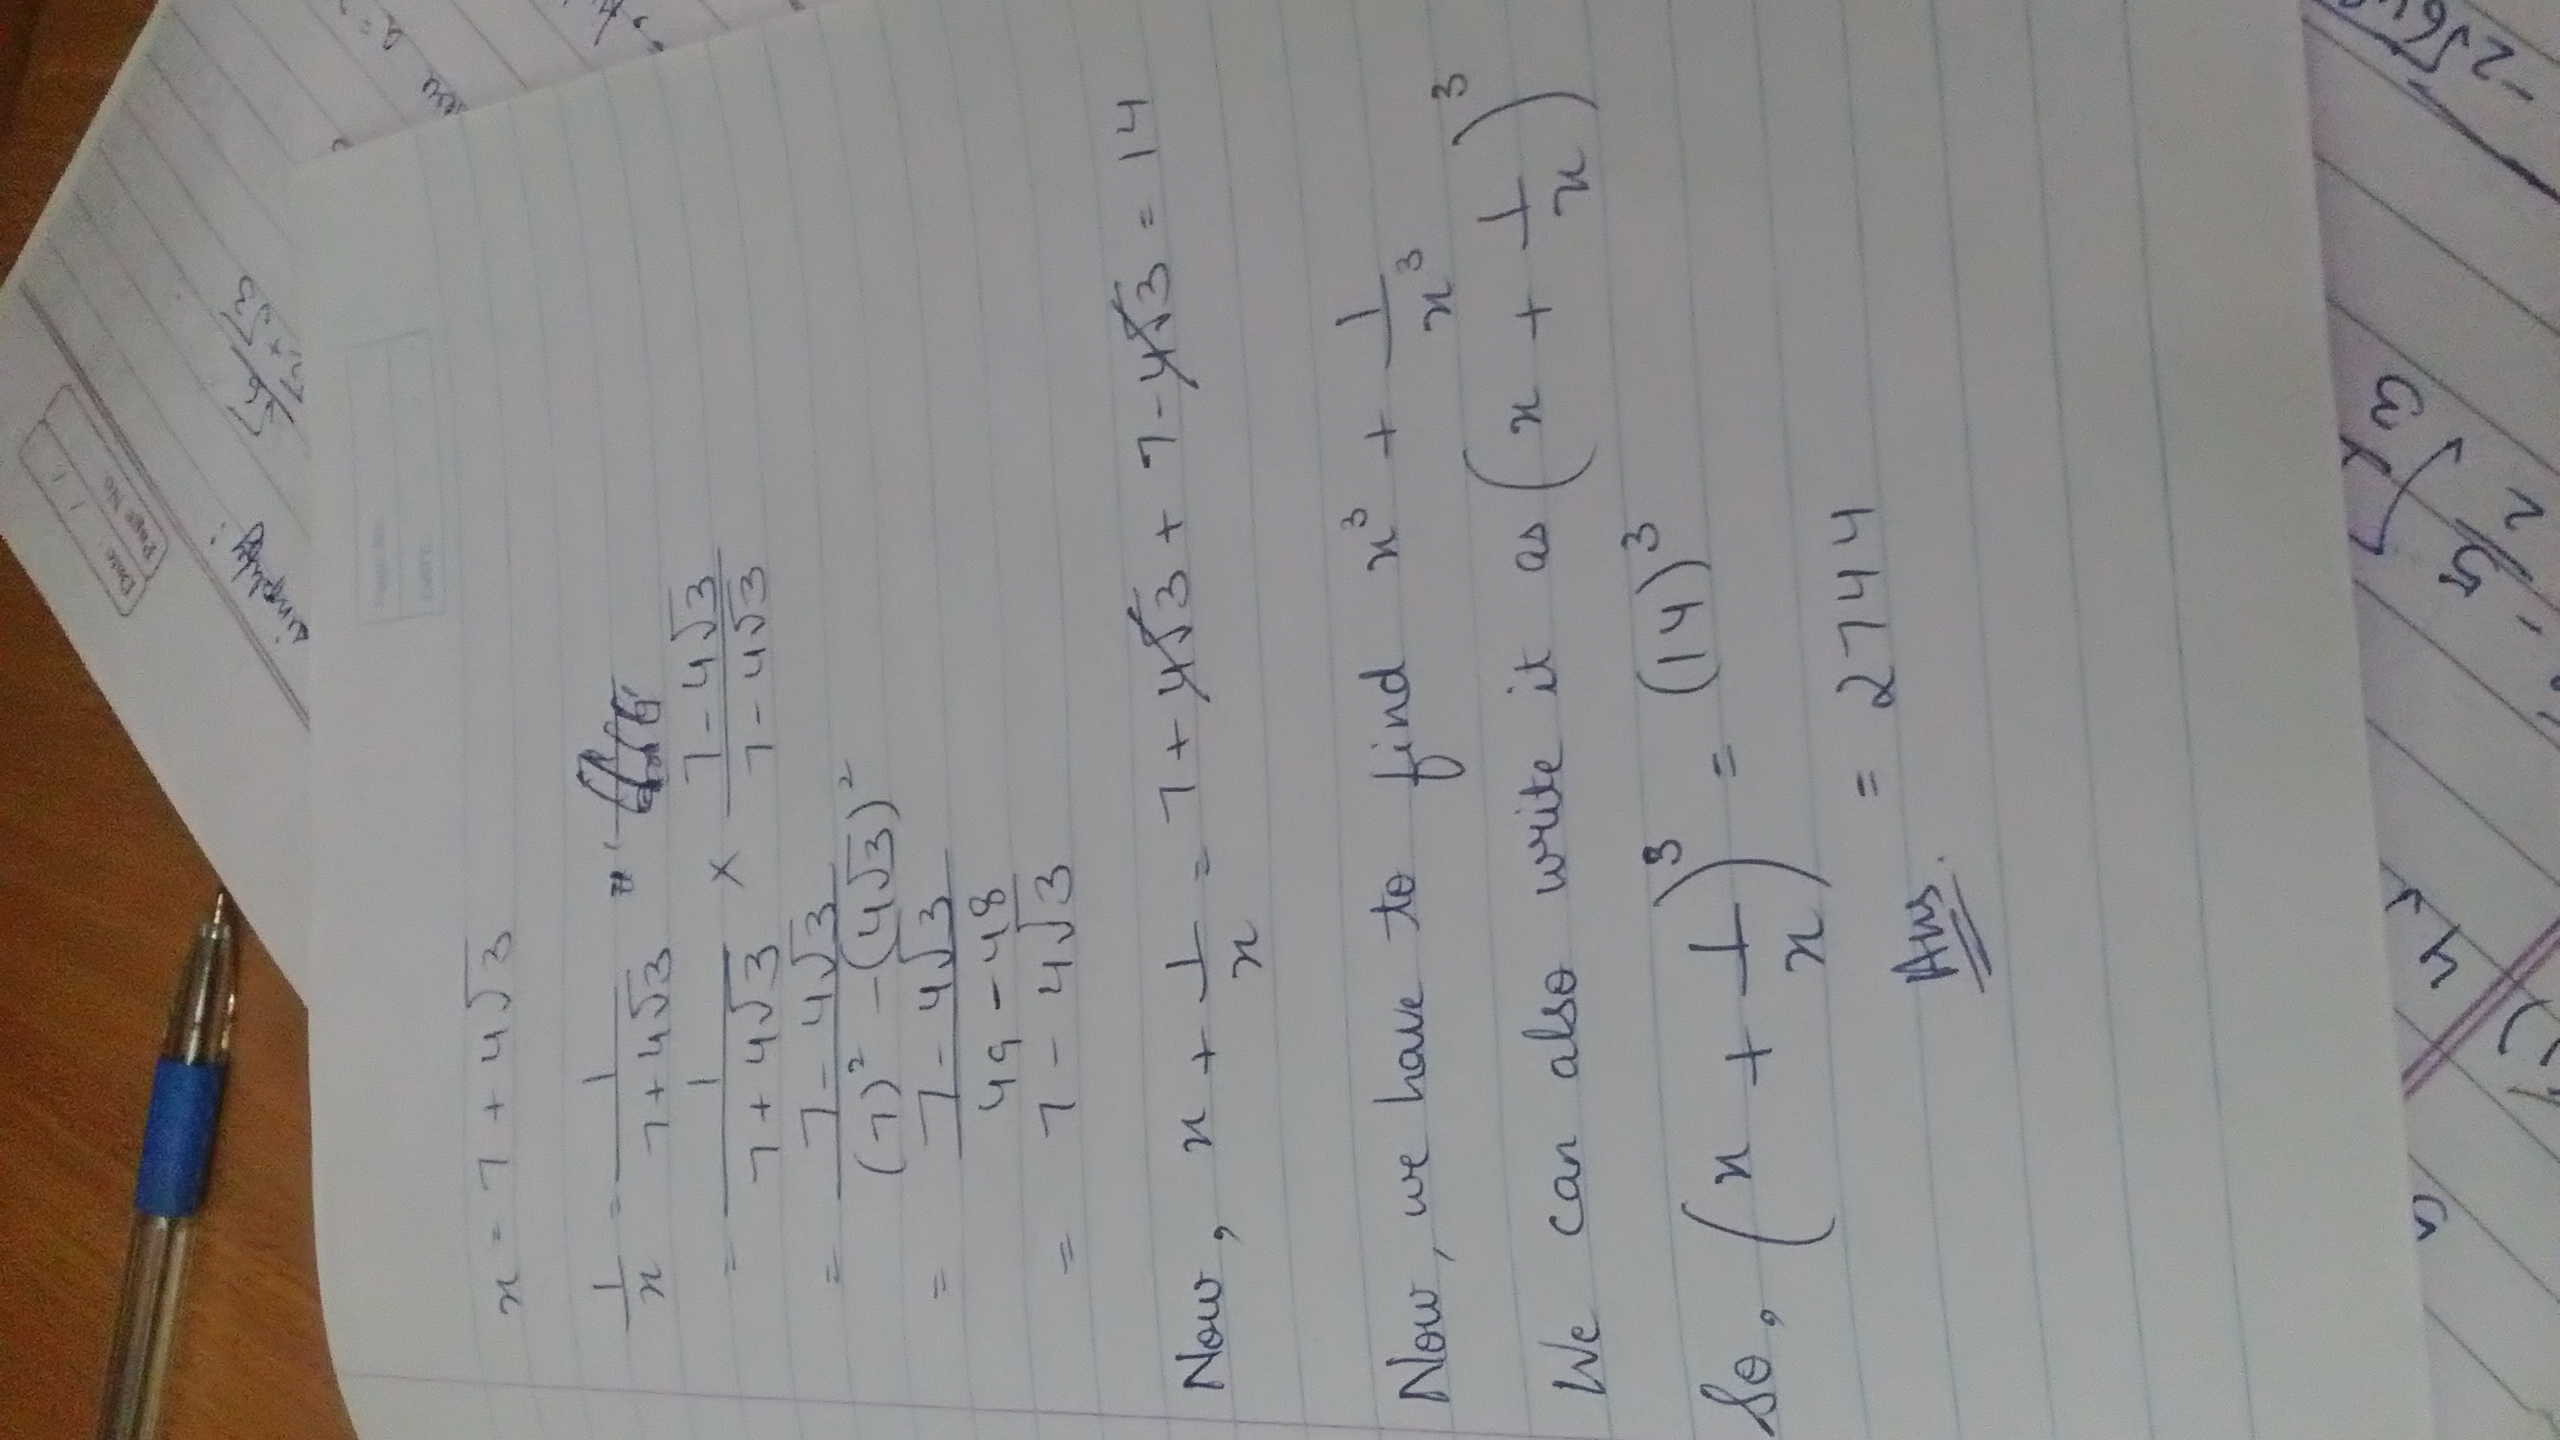 if x is equals to 7 + 4 root 3 find the value of bracket x